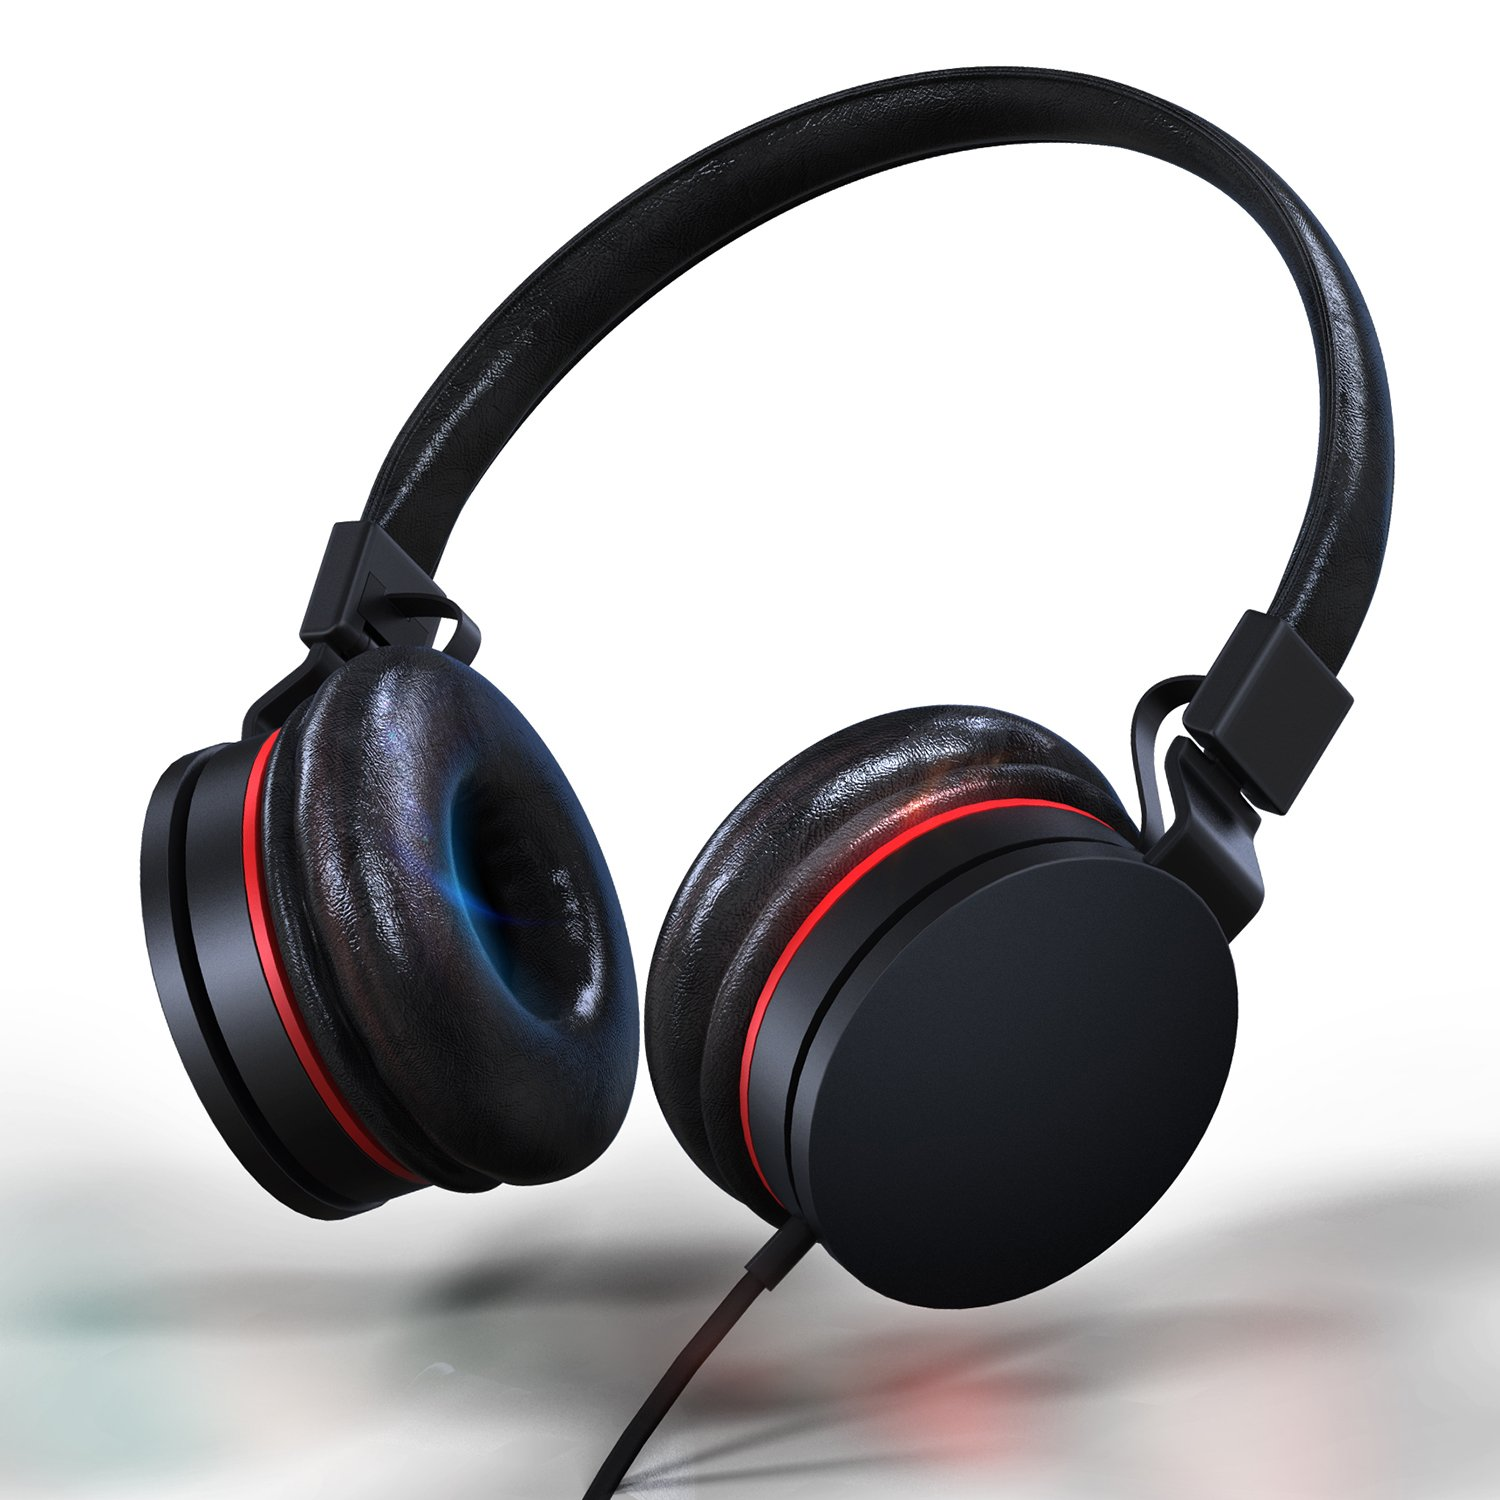 Over-Ear Wired Headphones | Lightweight Adjustable Foldable Headset with Microphone and Volume Control Hi-Fi Stereo Leather Earphones for iPad iPhone Smartphones Laptop Computer PC Mp3/4 (Black/Red)